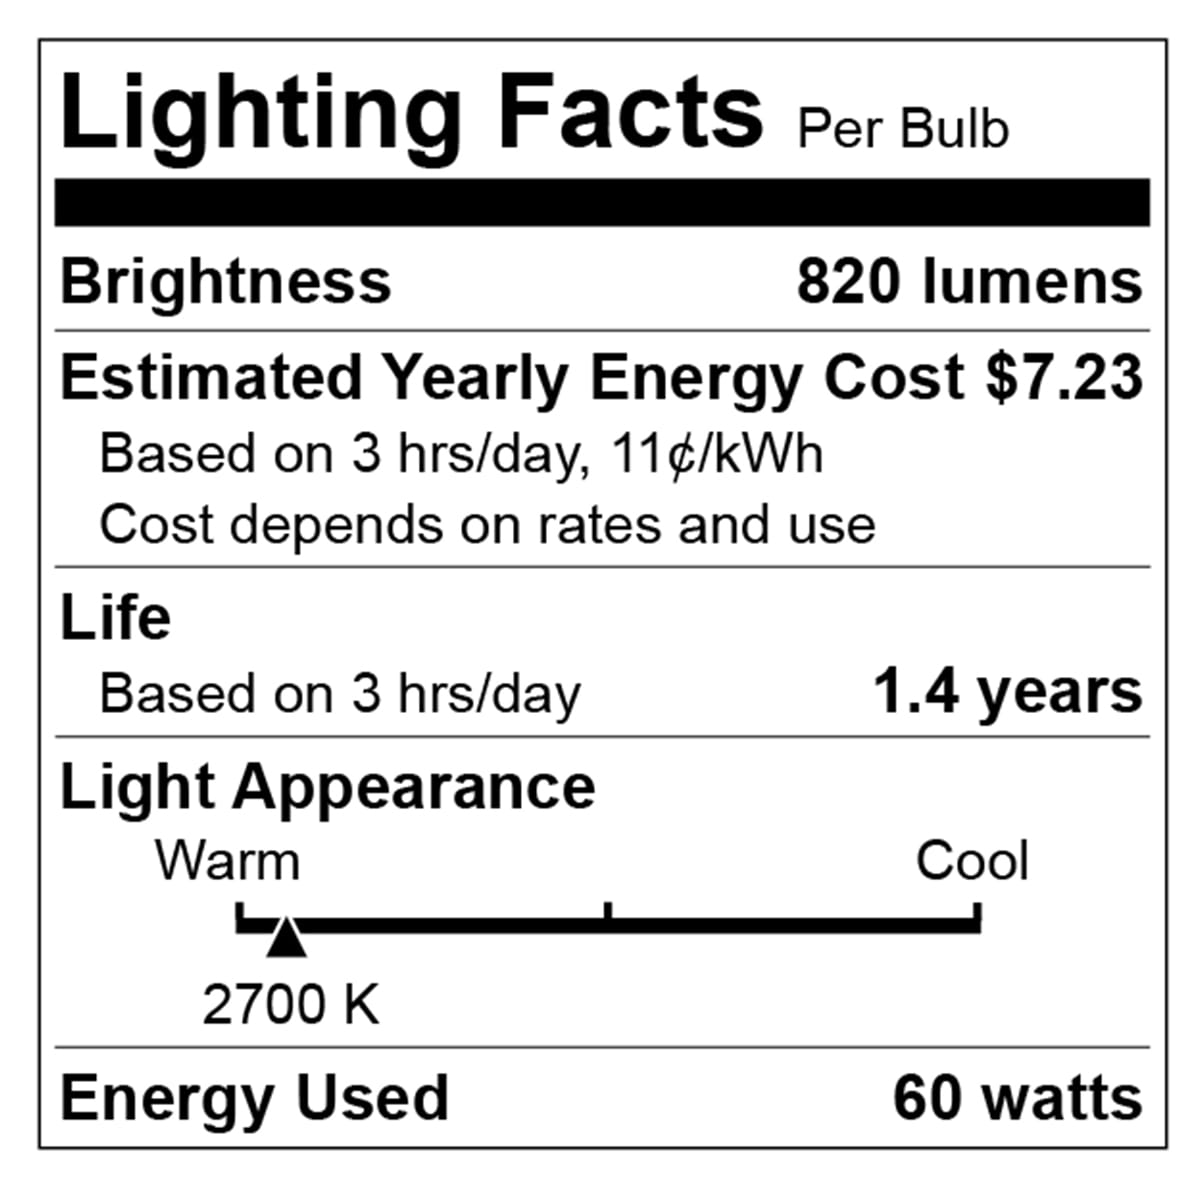 40 Watt In Lumen What Are Lumens Lumens Chart Definition Light Bulb Facts At